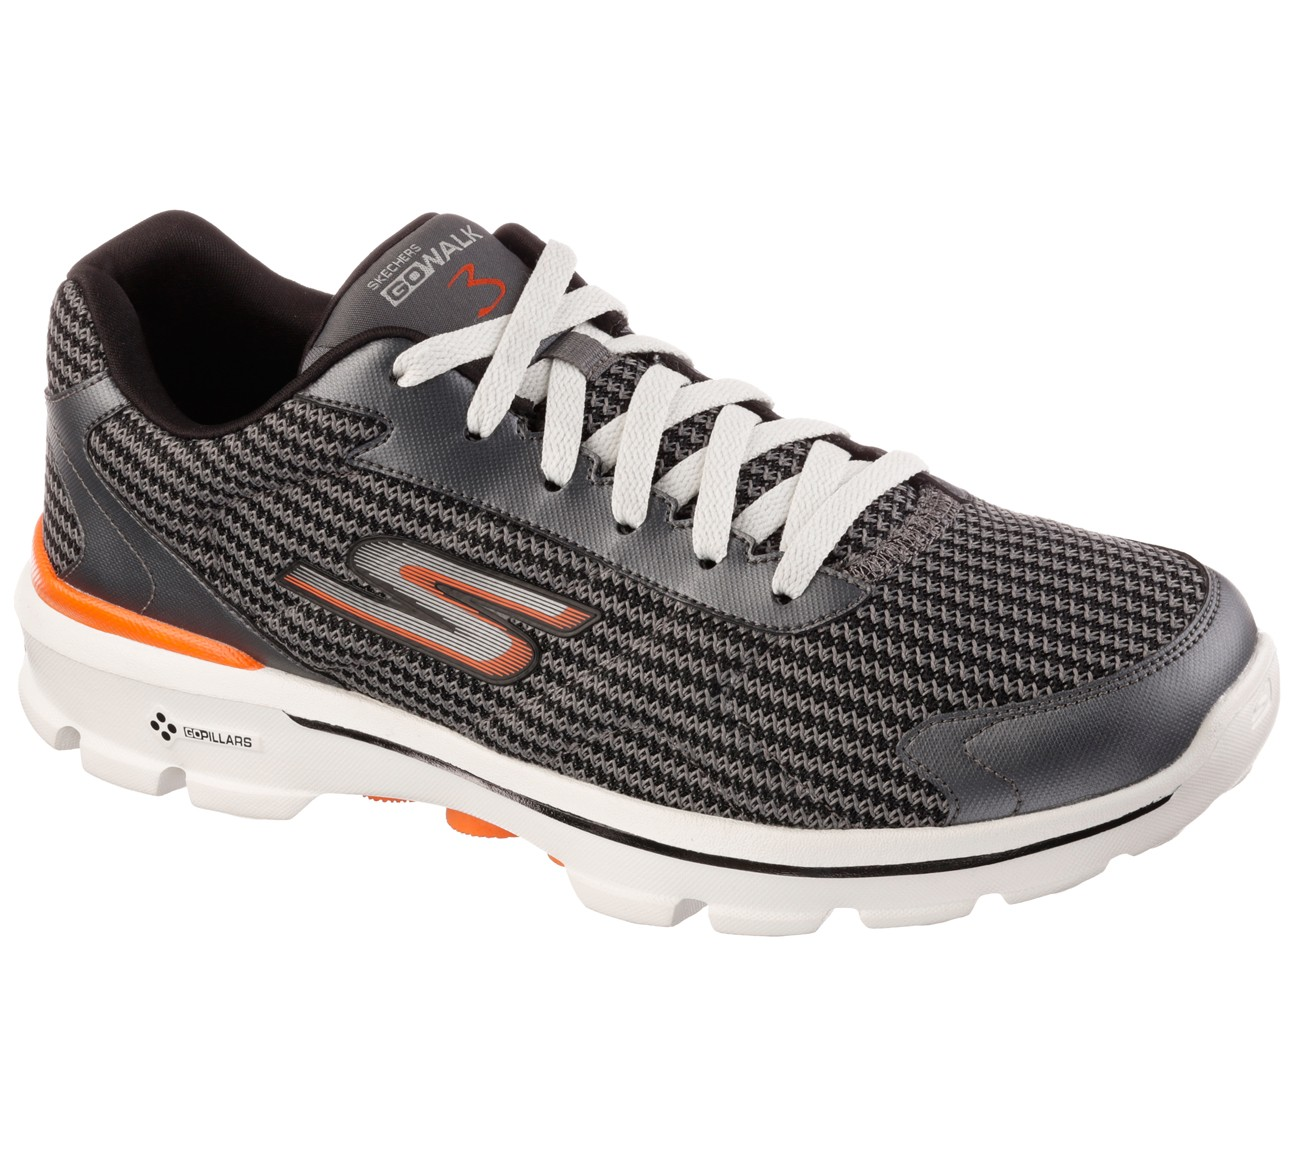 Skechers Breathable Mesh Sneakers | Low Shoes | Shoes | Ulla